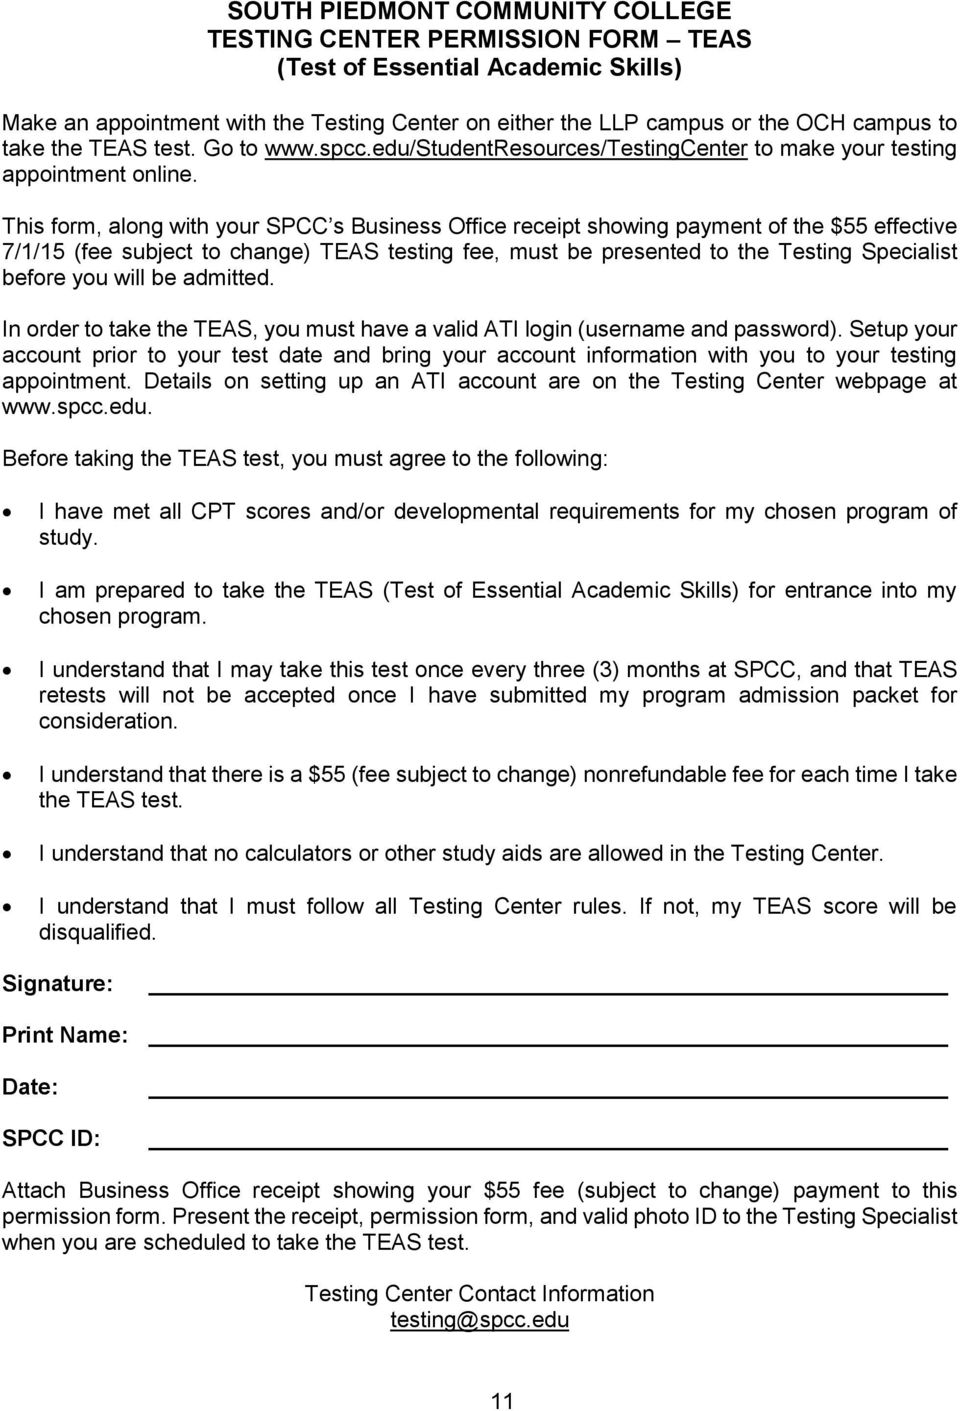 This form, along with your SPCC s Business Office receipt showing payment of the $55 effective 7/1/15 (fee subject to change) TEAS testing fee, must be presented to the Testing Specialist before you